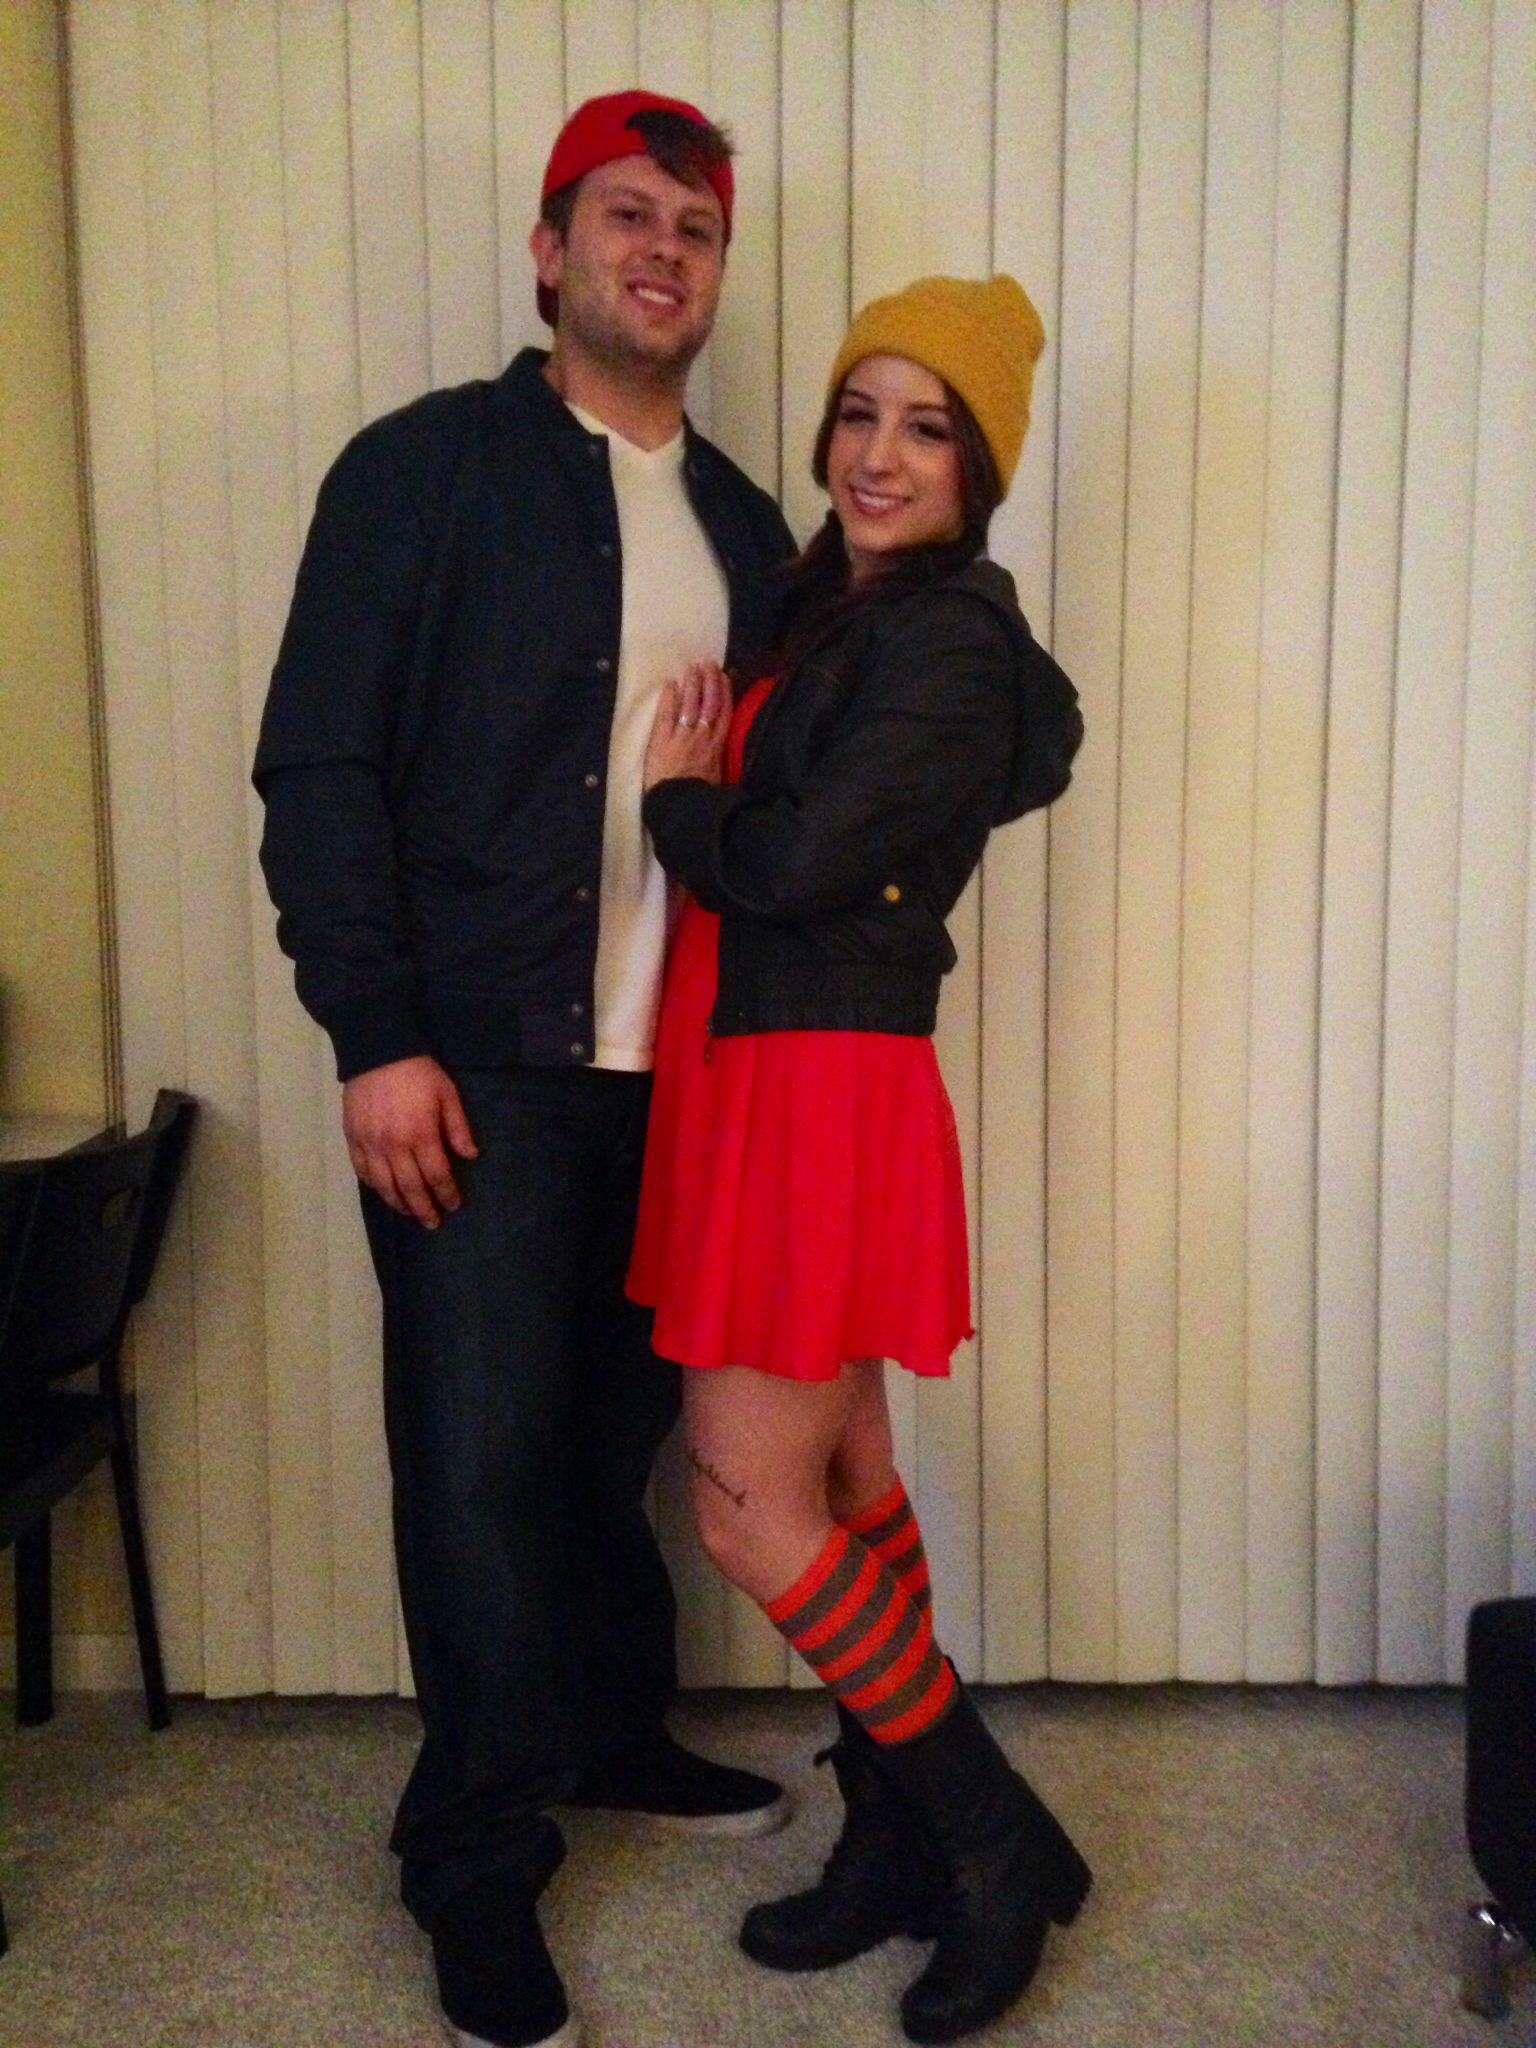 spinelli & tj halloween couples costumes from recess on disney